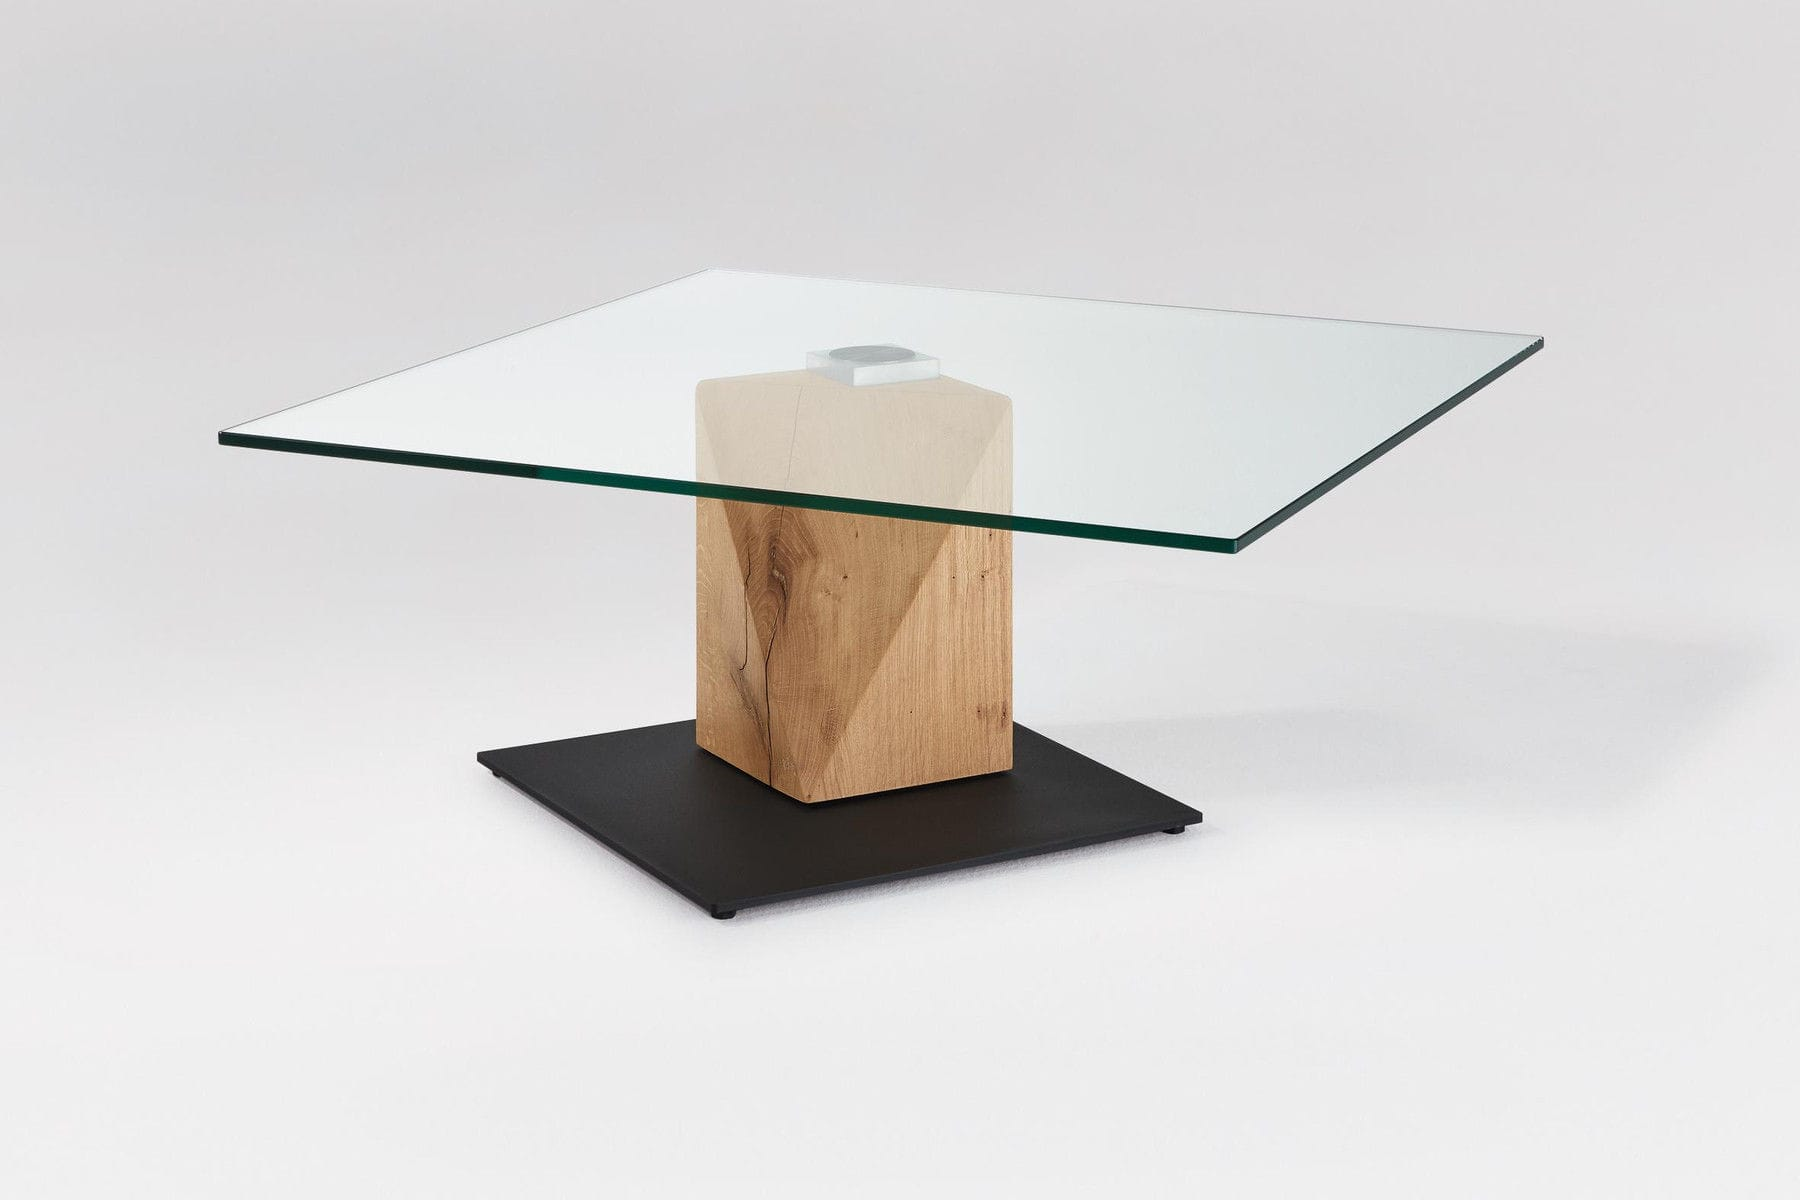 Mustering Couchtisch Contemporary Coffee Table Frosted Glass Rectangular Square